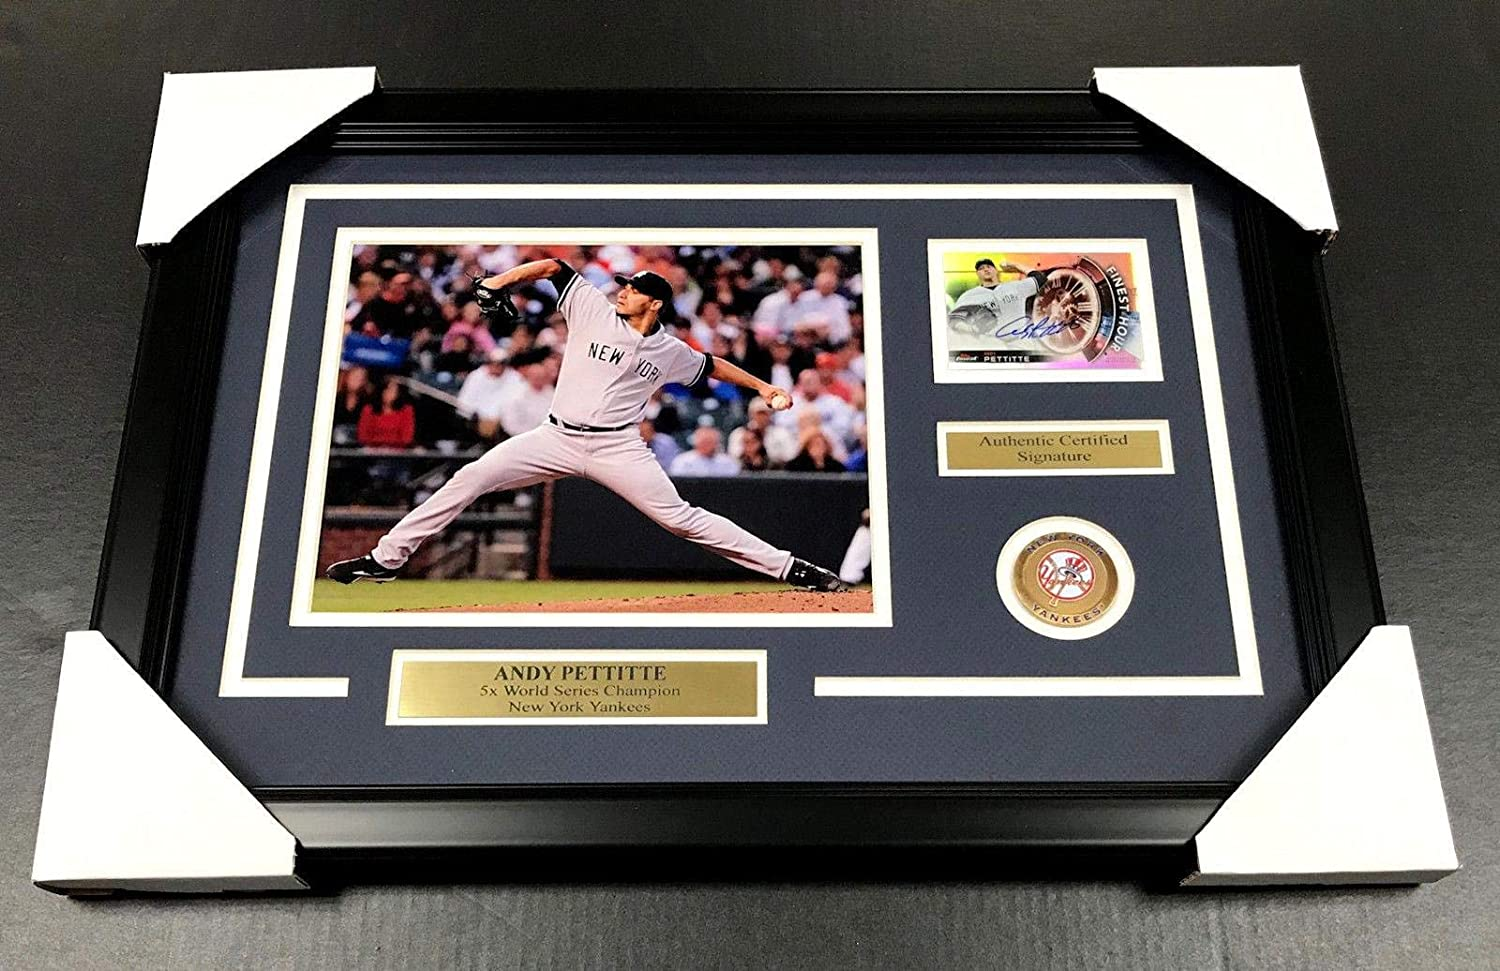 Andy Pettitte Autographed Photo - Cd 8x10 FRAMED - Autographed MLB Photos Baseball Card Outlet